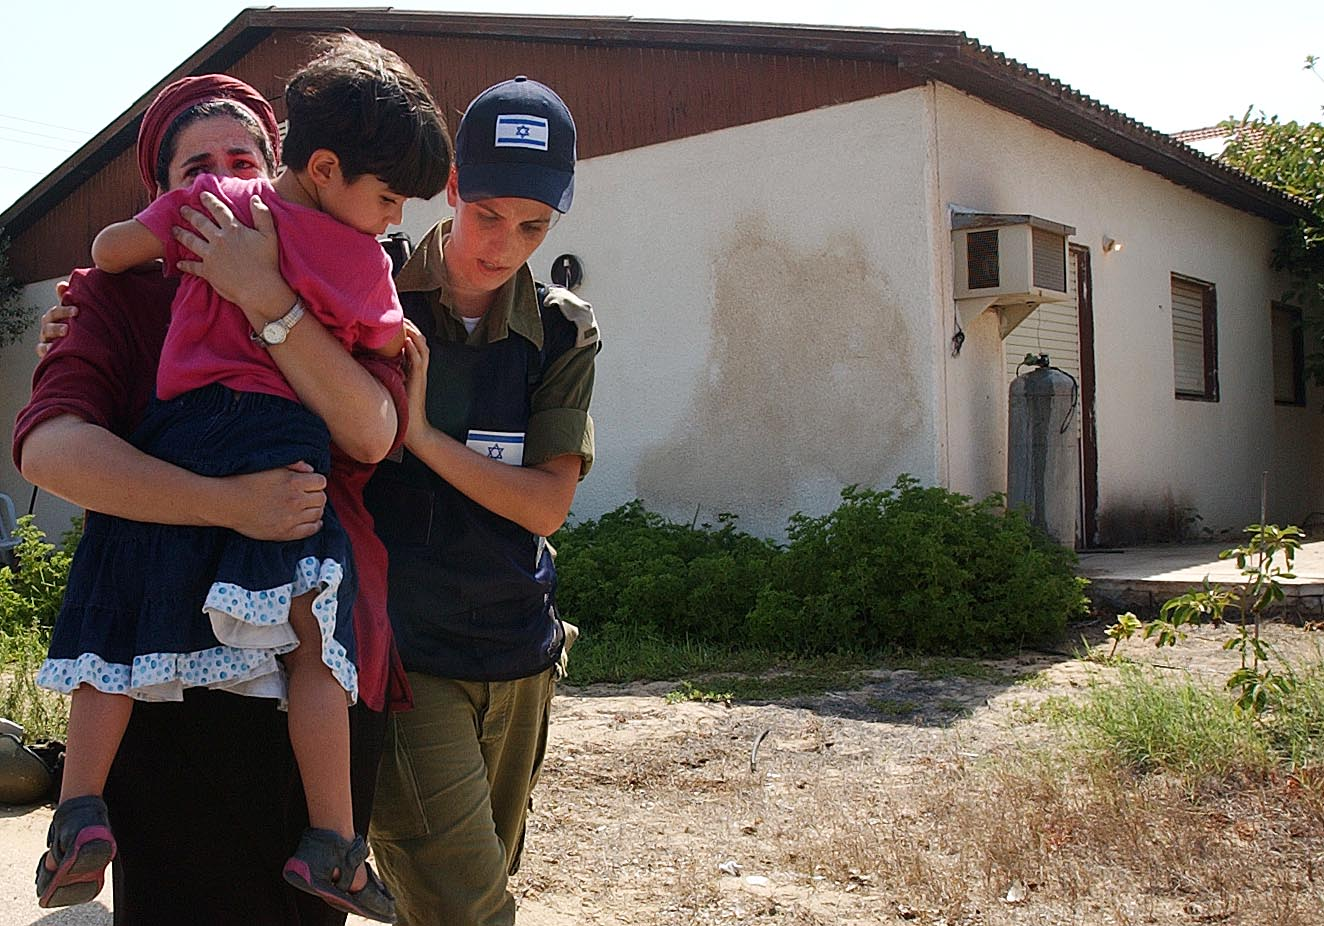 An Israeli soldier women evacuate a Jewish settler woman holding her child from a settlement during the pullout plan in the settlement of Neve Dekalim. Photo by Pierre Terdjamn/Flash90. *** Local Caption *** ??? ????? ??????? ??? ???? ??? ??????? ???????? ??????? ??? ???? ????? ????? ???????